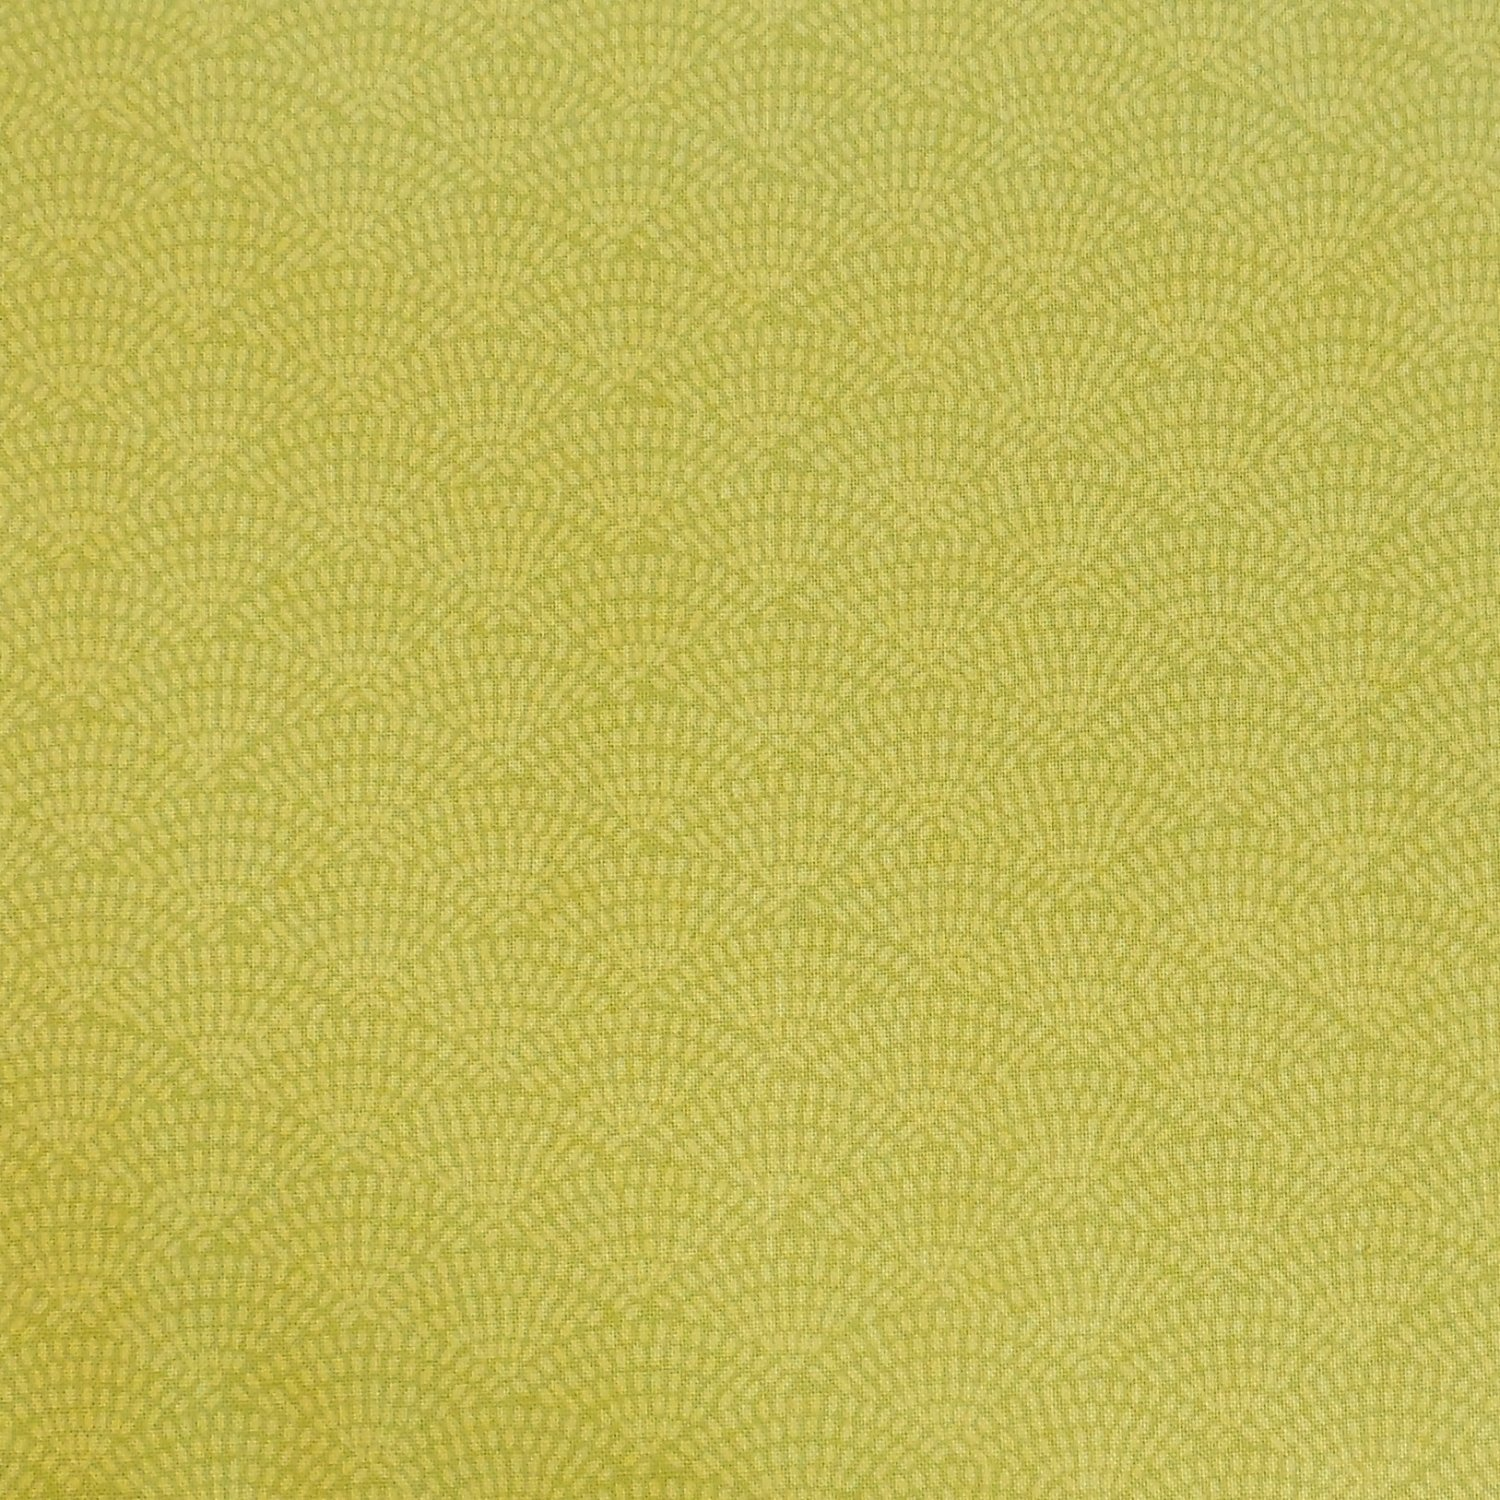 Timeless Treasures Fun Citron Quilting Fabric C5100